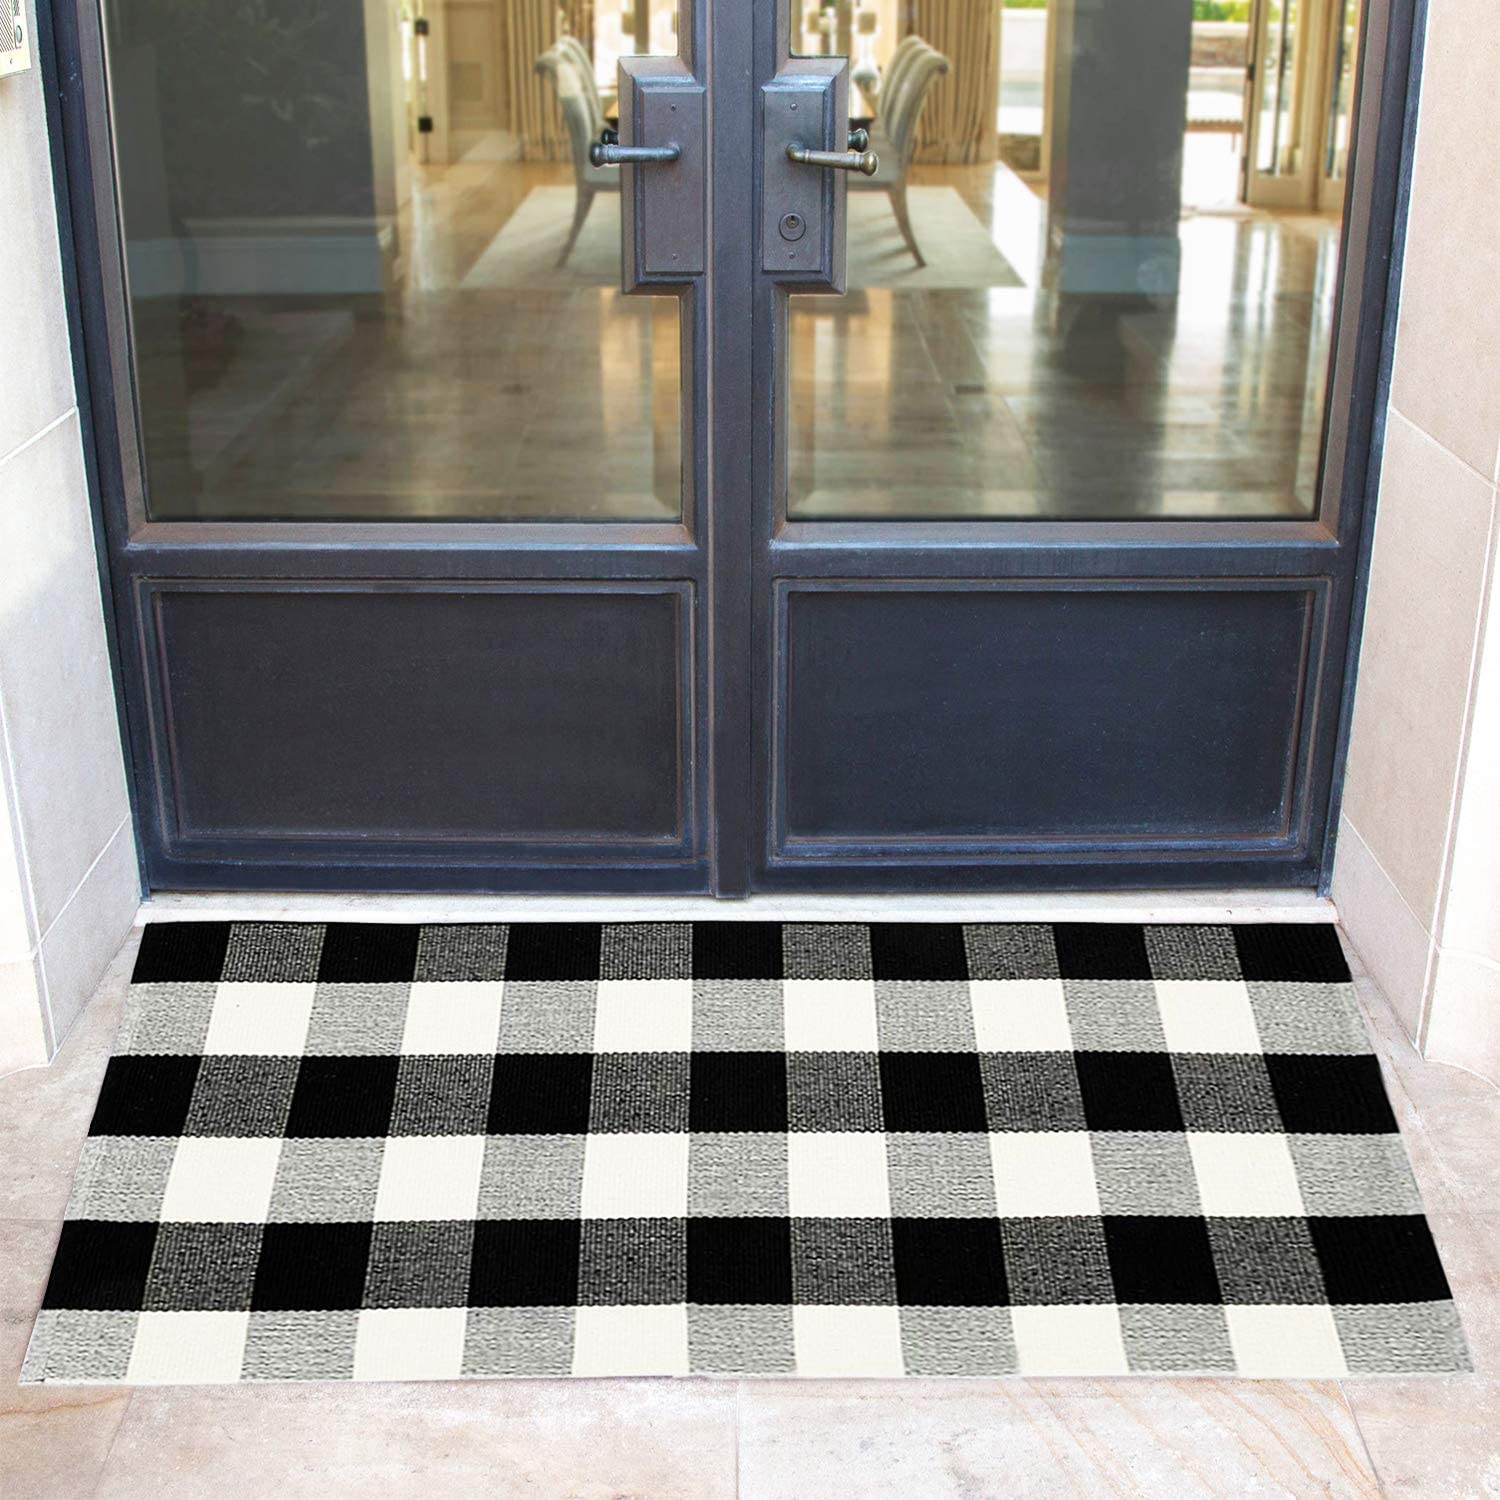 Winwinplus Buffalo Plaid Check Rug 27.5 x 43.3 Inches Washable Woven Outdoor/Indoor Rugs for Welcome Doormat Layered Door Mats Porch/Farmhouse Decor Rug